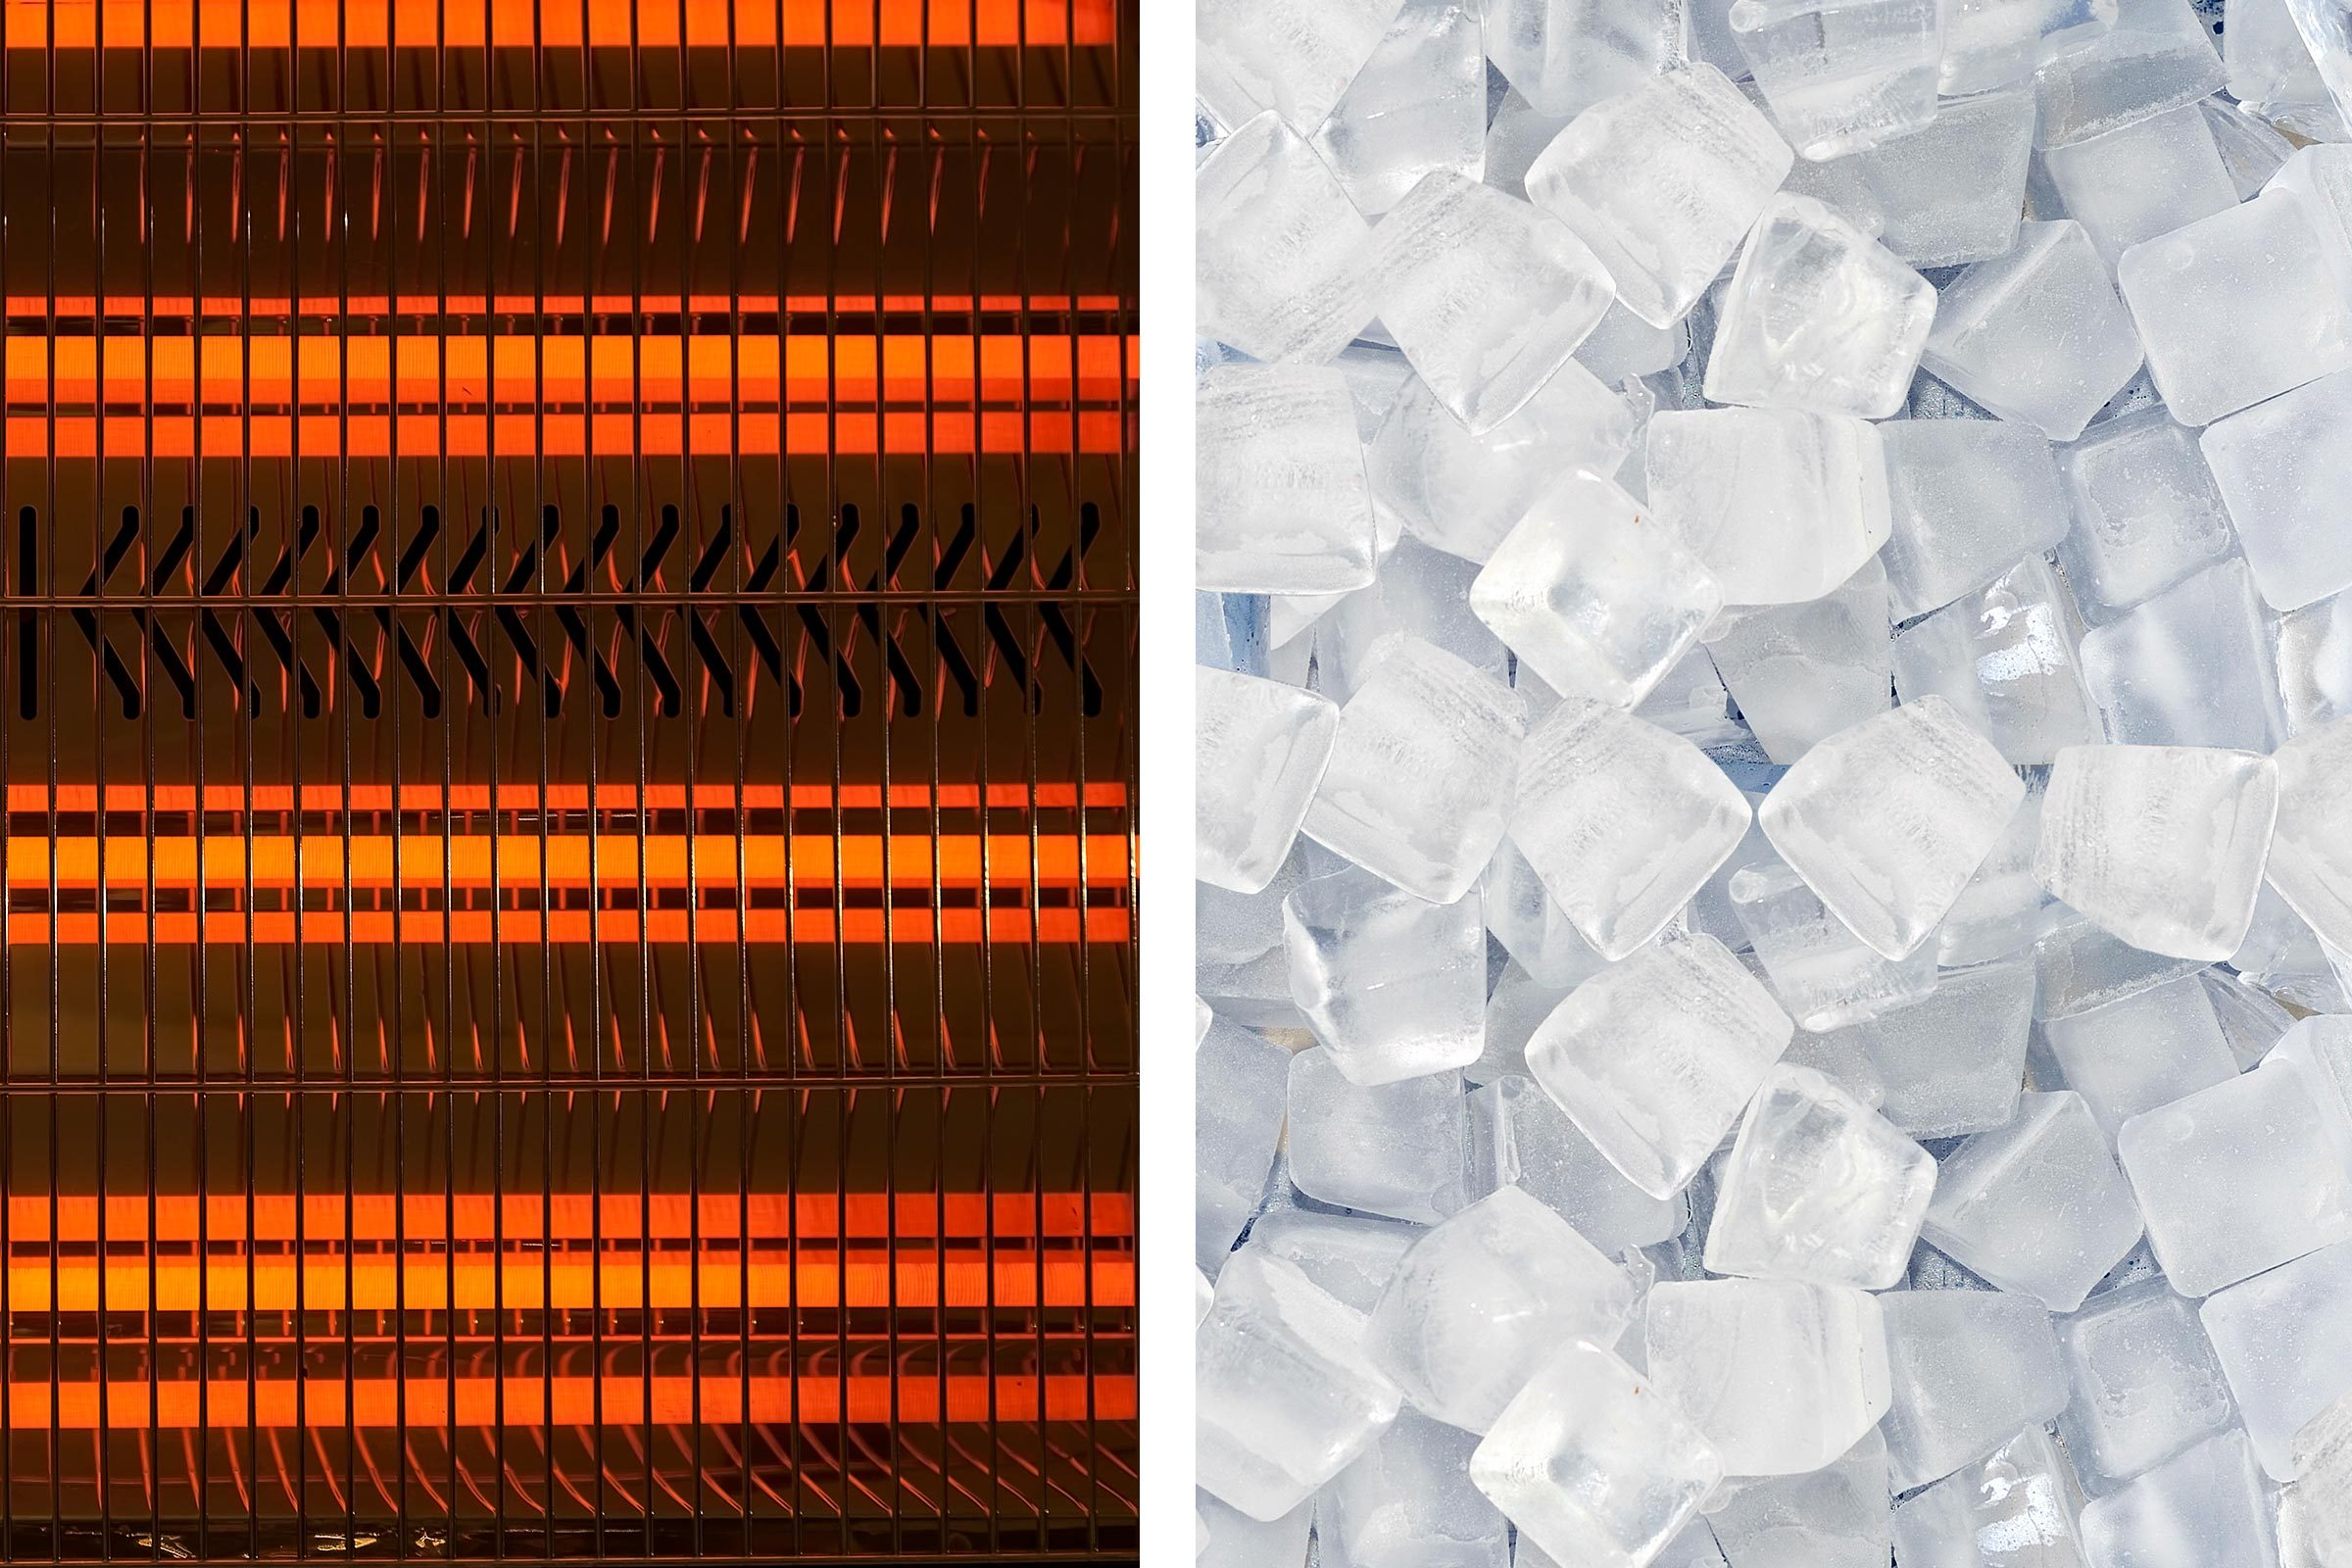 Ice or Heat: What's Best for Your Pain?